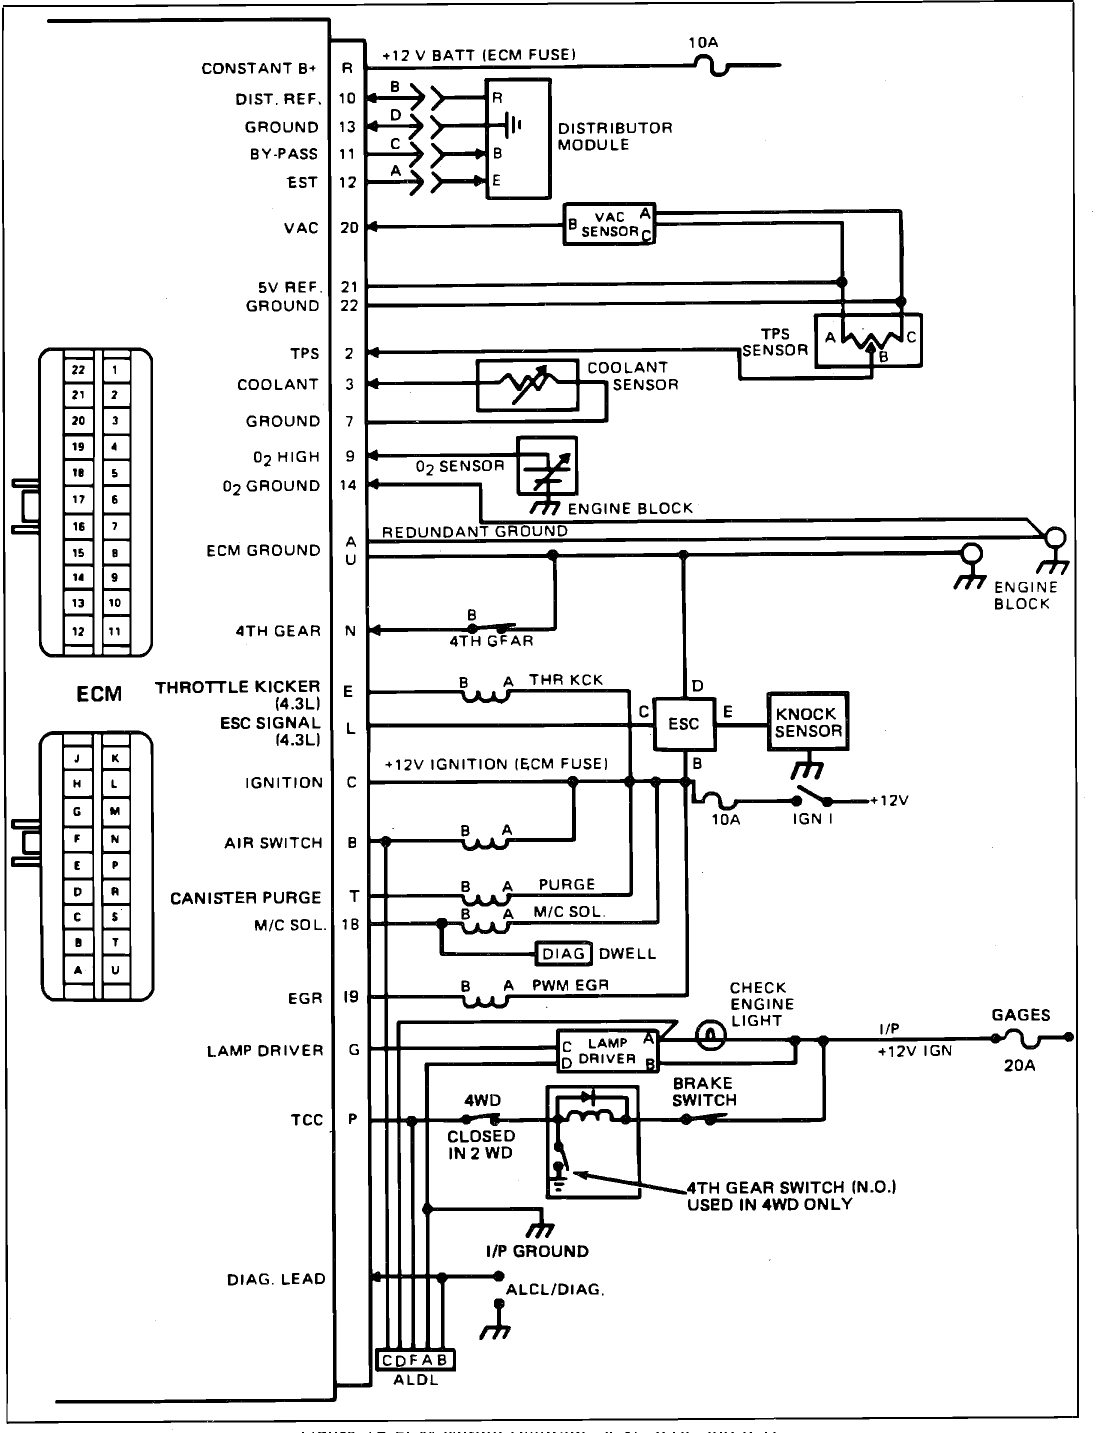 hight resolution of 1990 gmc vandura wiring diagram wiring diagram user 1990 gmc vandura wiring diagram wiring diagram host